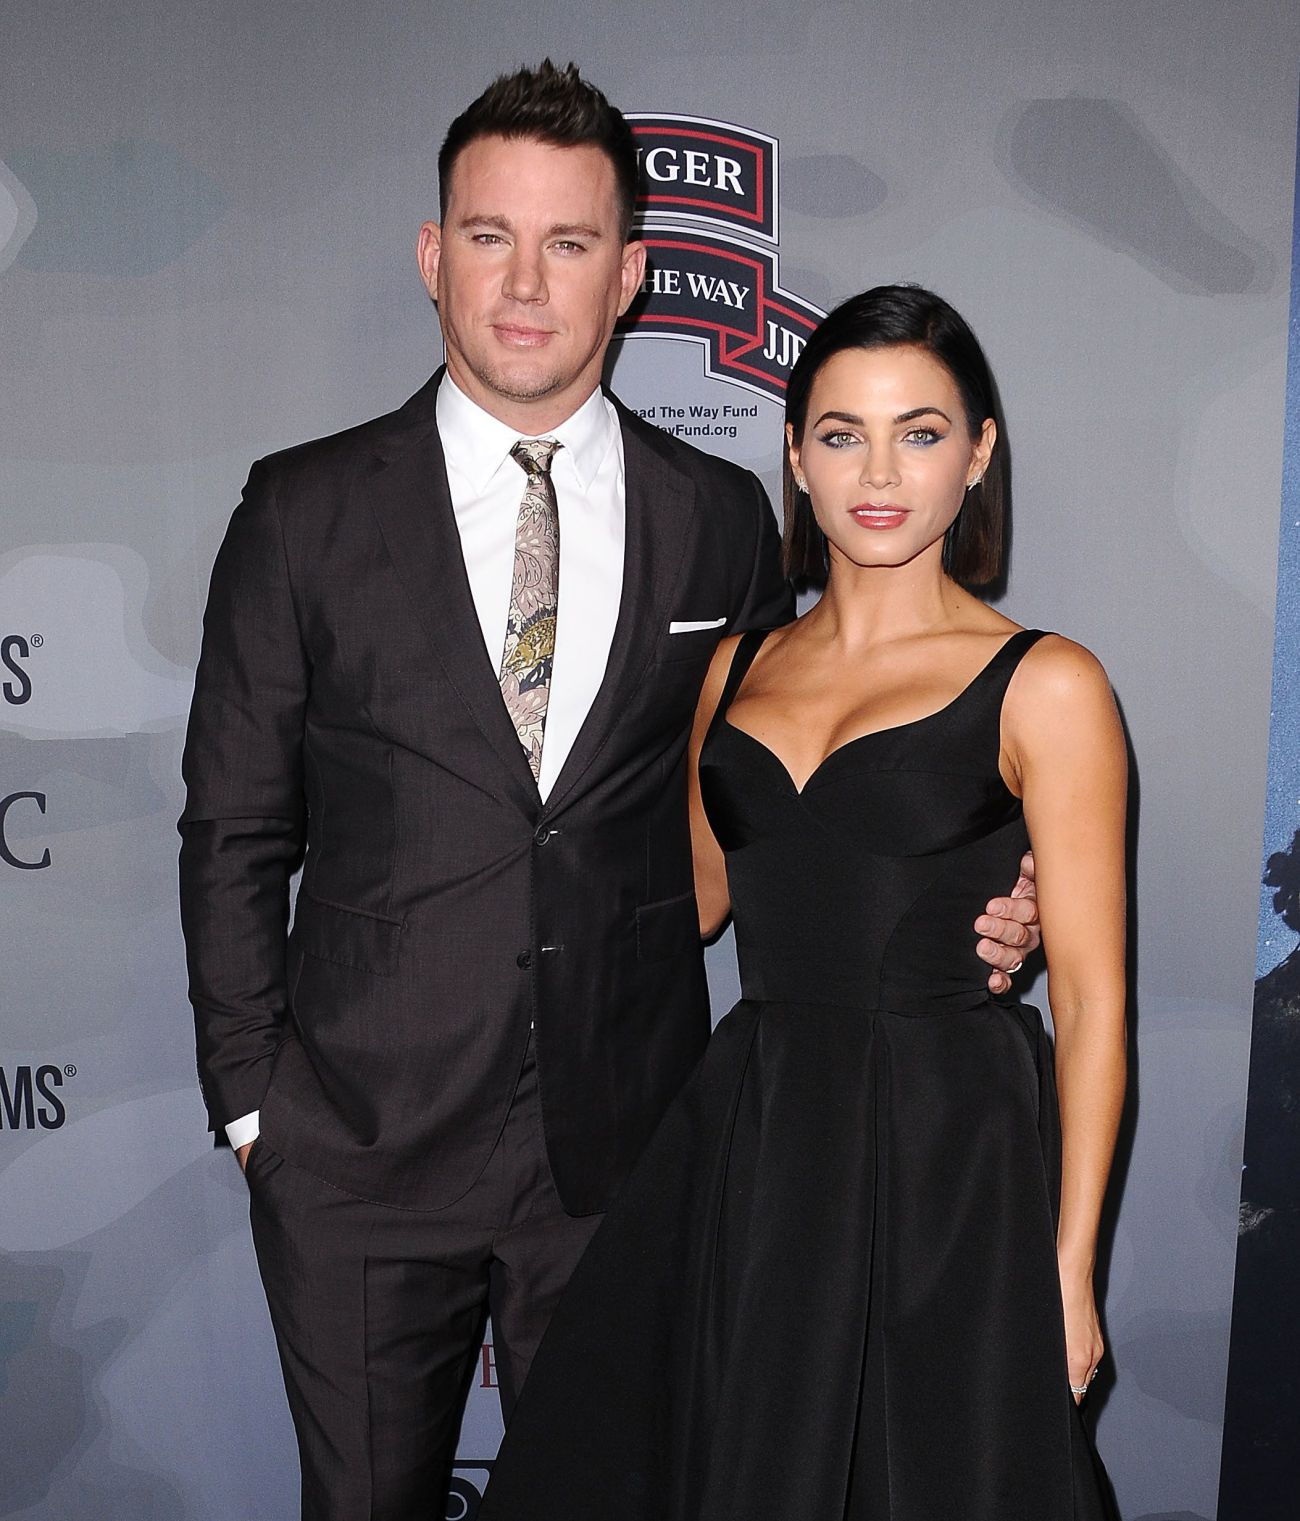 Channing Tatum and Jenna Dewan attend the premiere of 'War Dog: A Soldier's Best Friend' on Nov. 6, 2017, in Los Angeles.